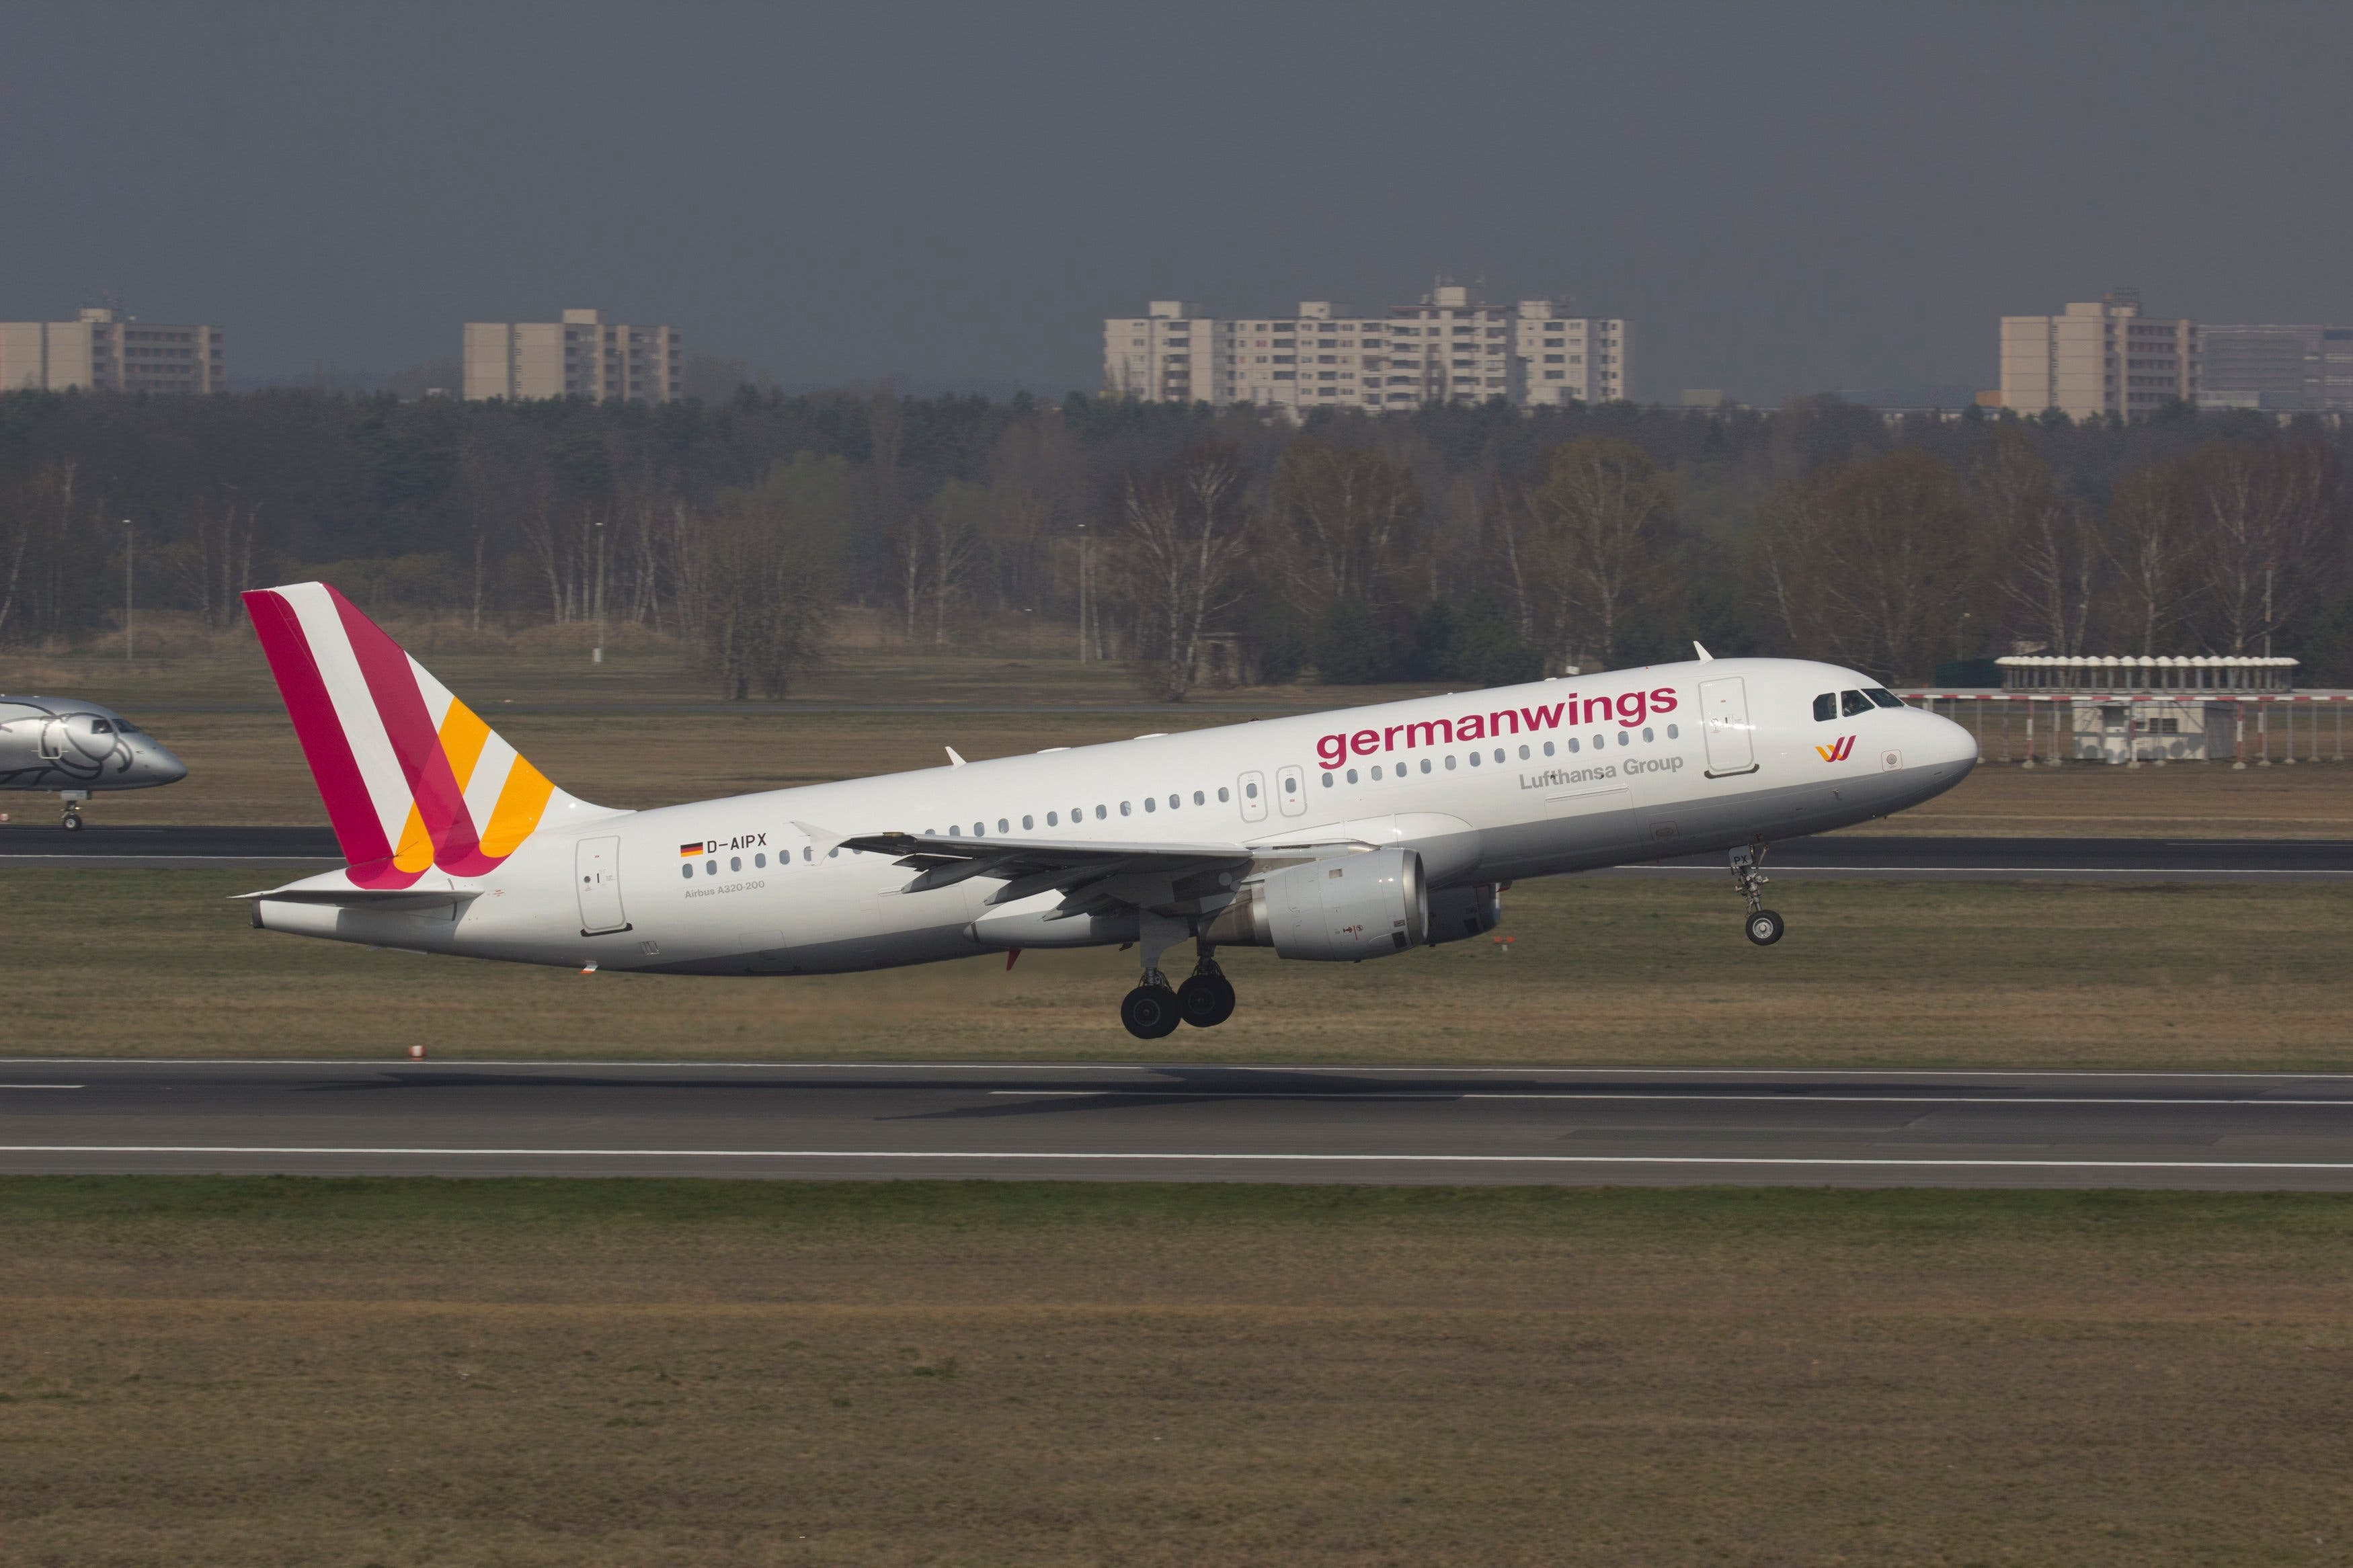 A Germanwings Airbus A320 registration D-AIPX is seen at the Berlin airport in this March 29, 2014 file photo. (Reuters))